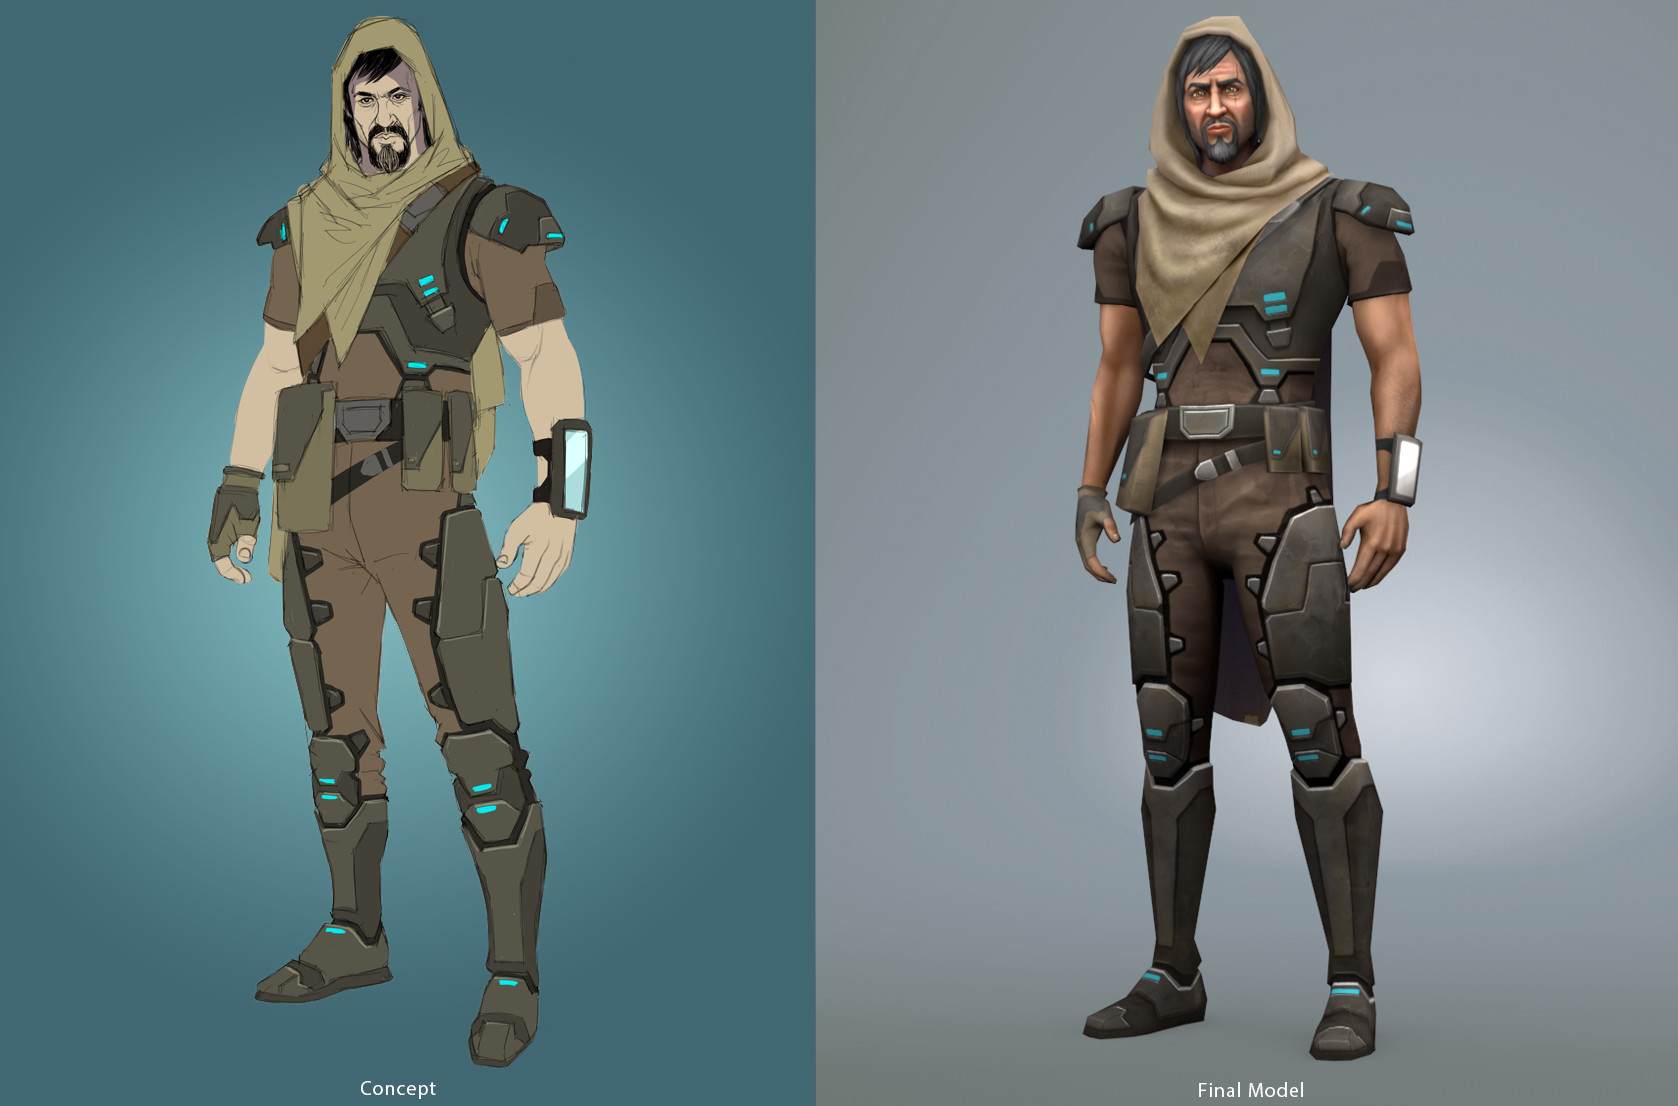 Concept art and final model.